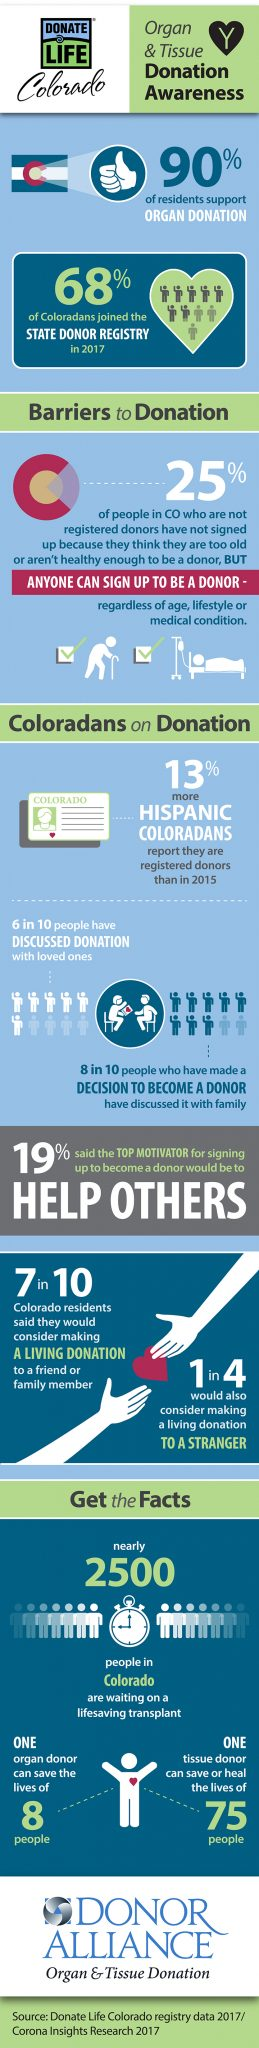 CO-tissue-donation-awareness